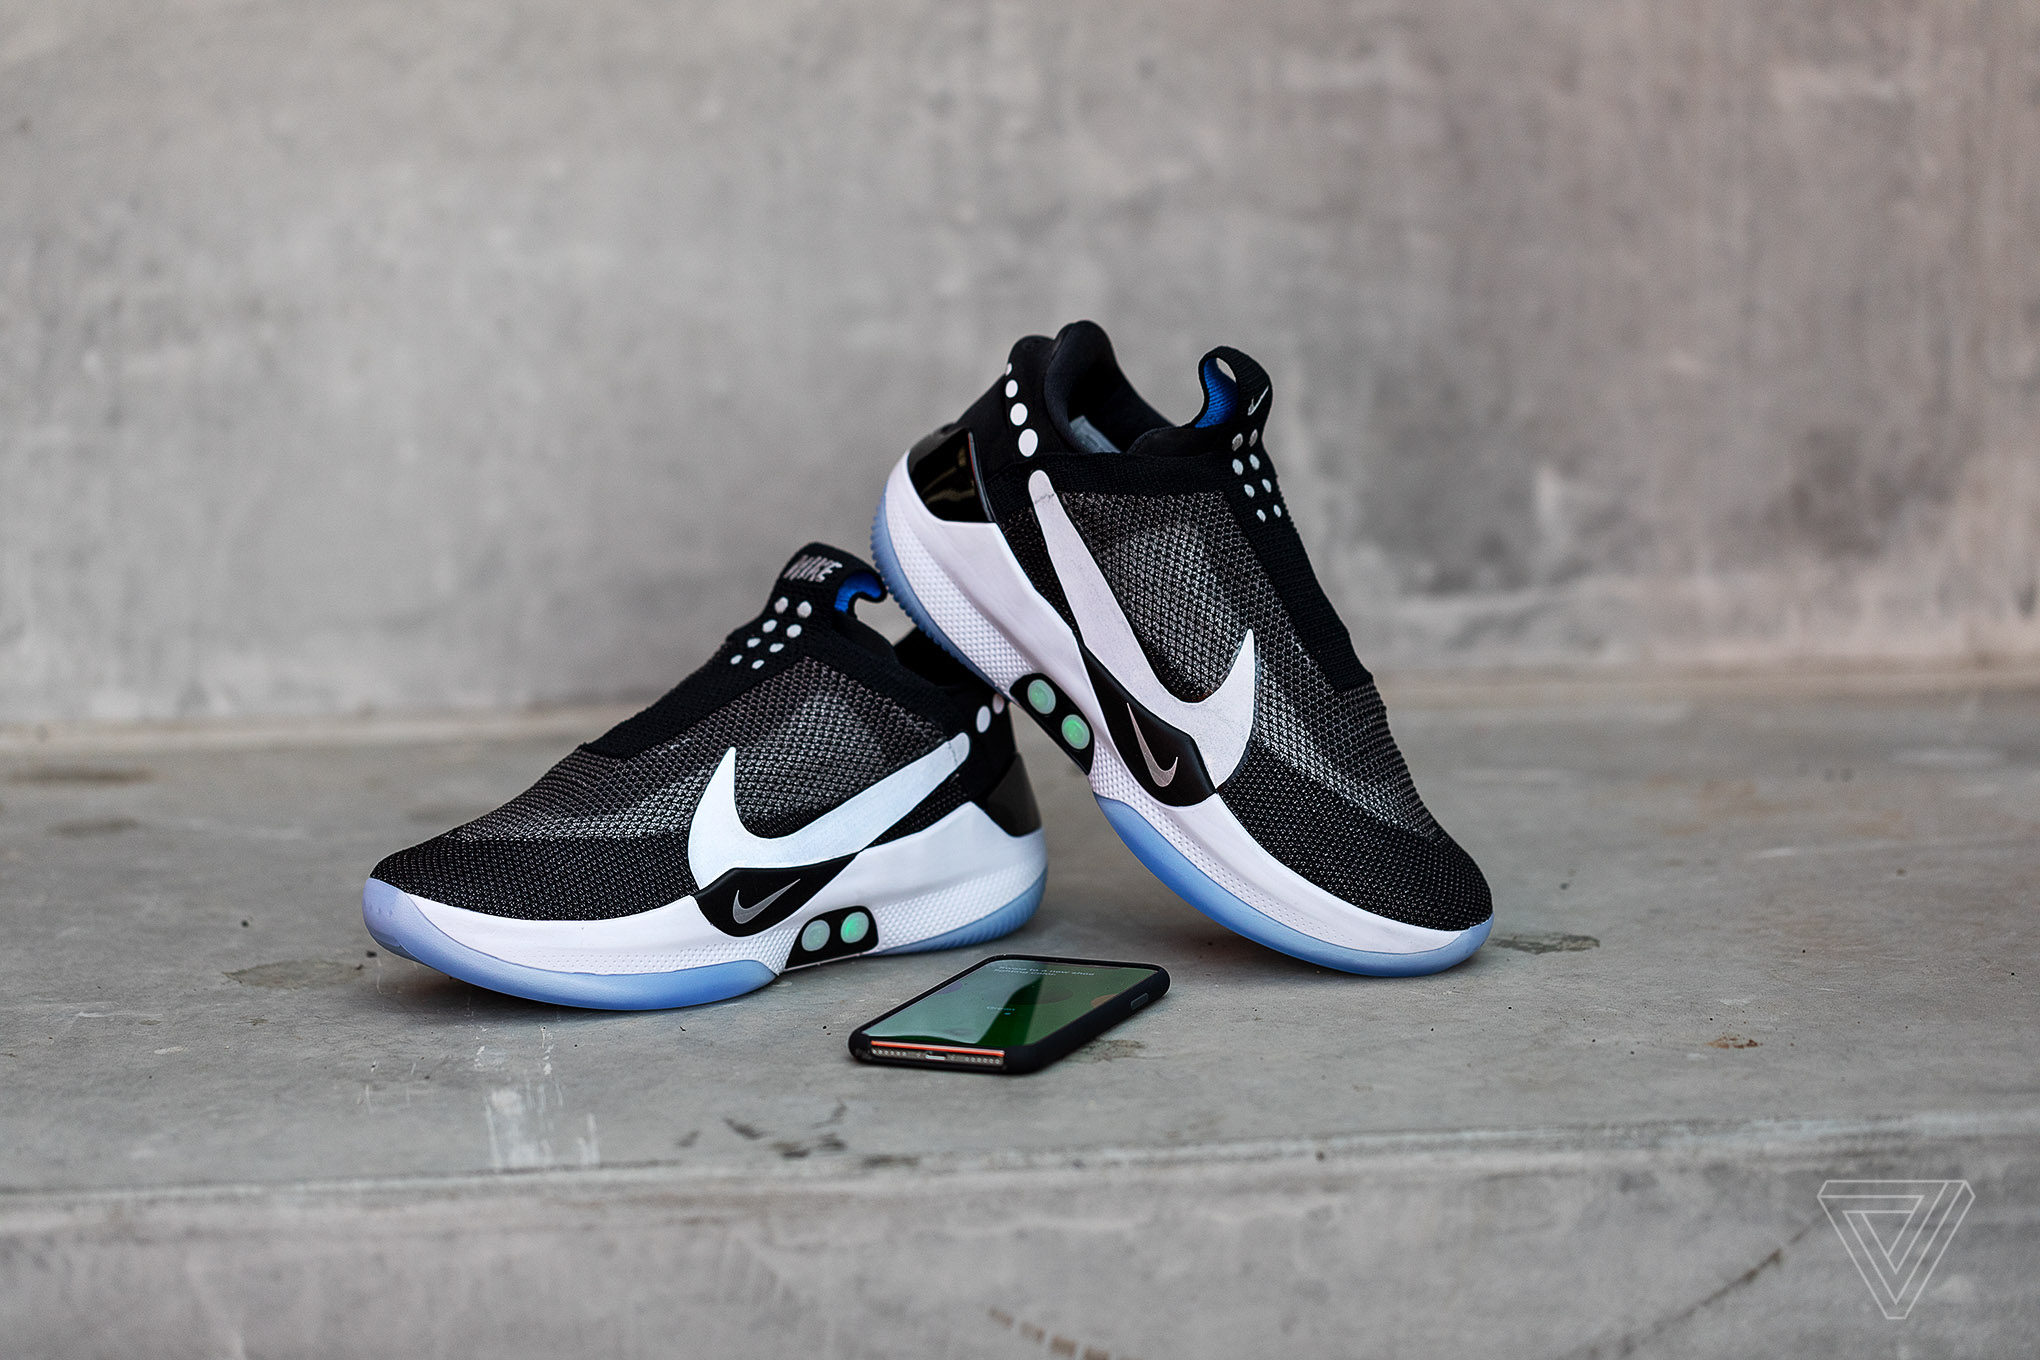 84778e7613 Nike's Adapt BB self-lacing sneakers let you tie your shoes from an ...